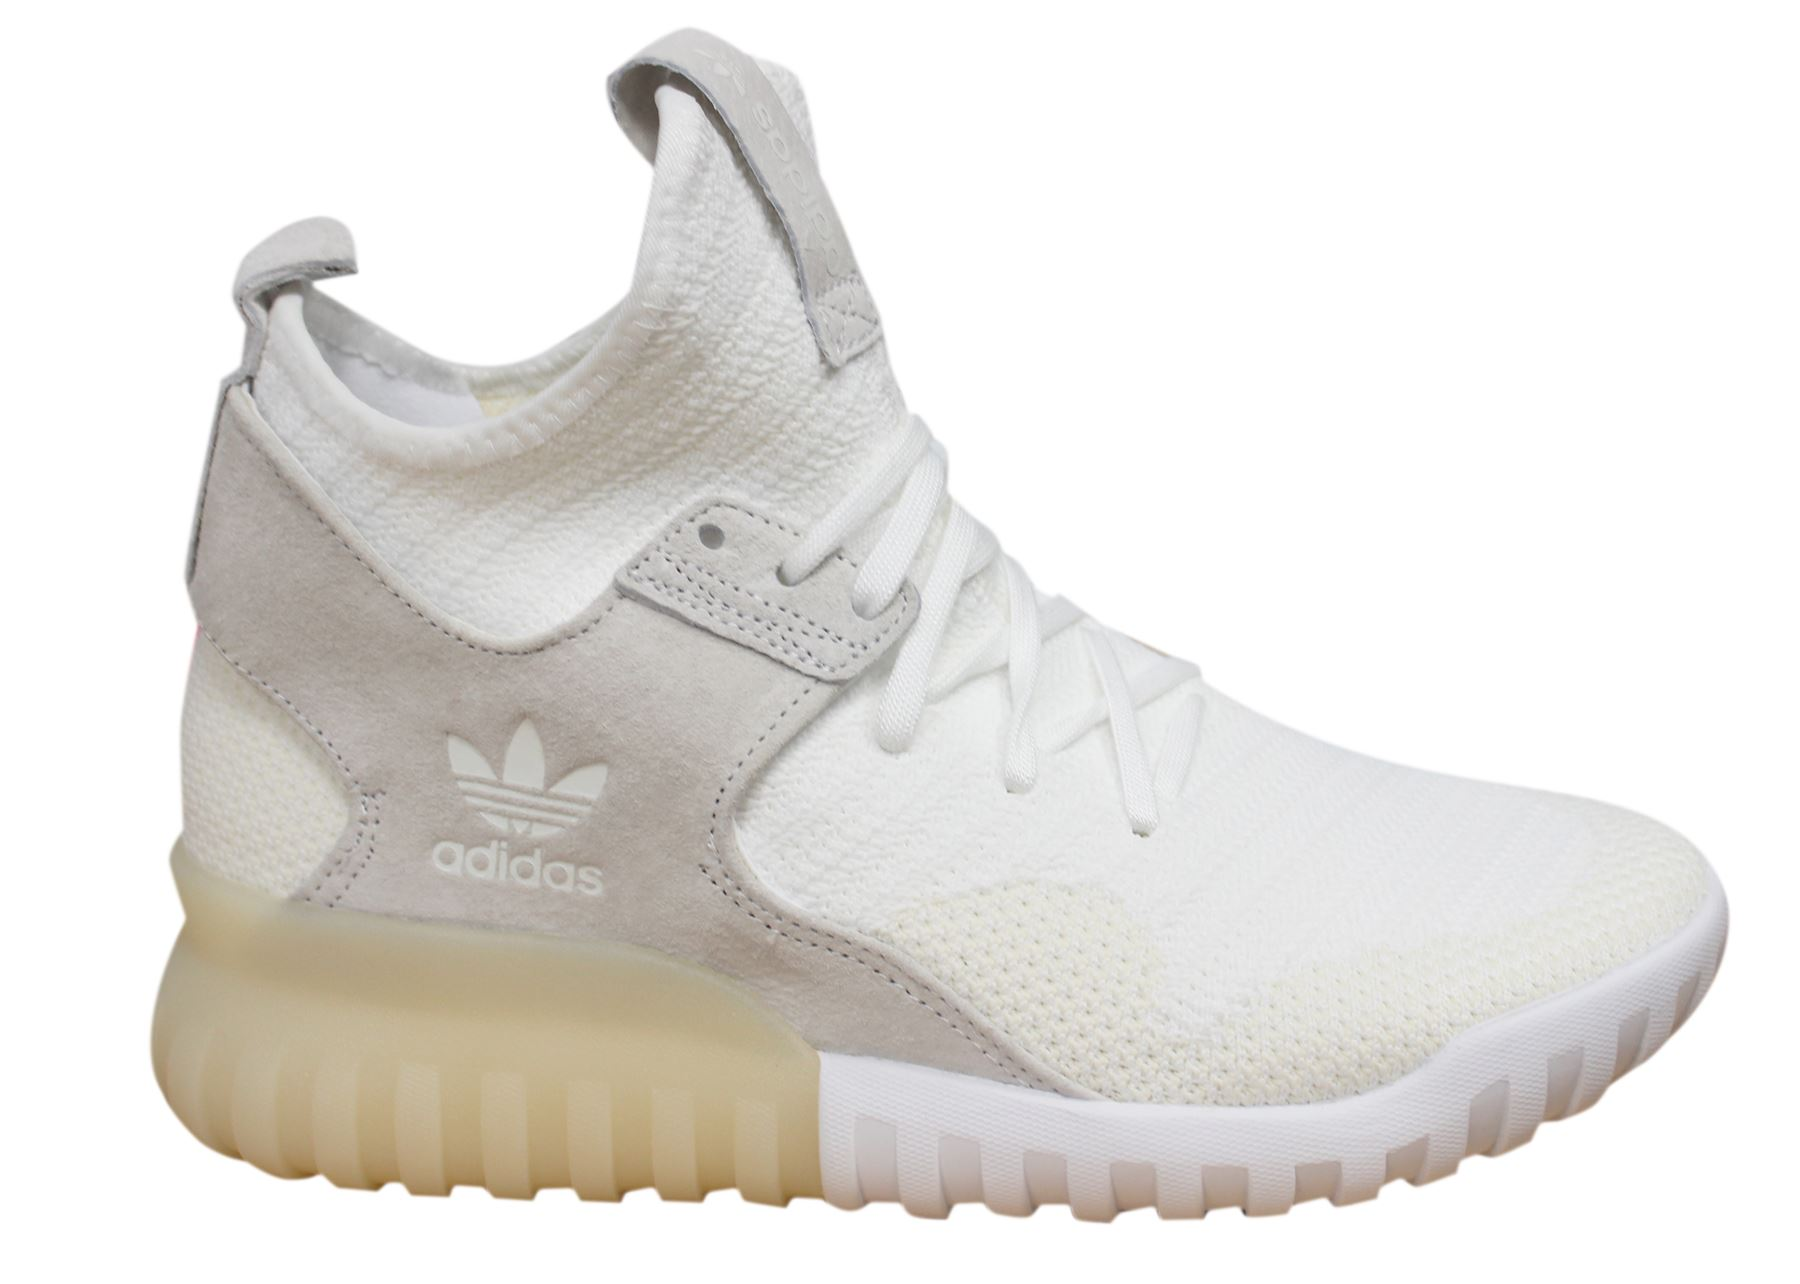 Details about Adidas Originals Tubular X PK Lace Up White Mens Leather Trainers S80130 U7